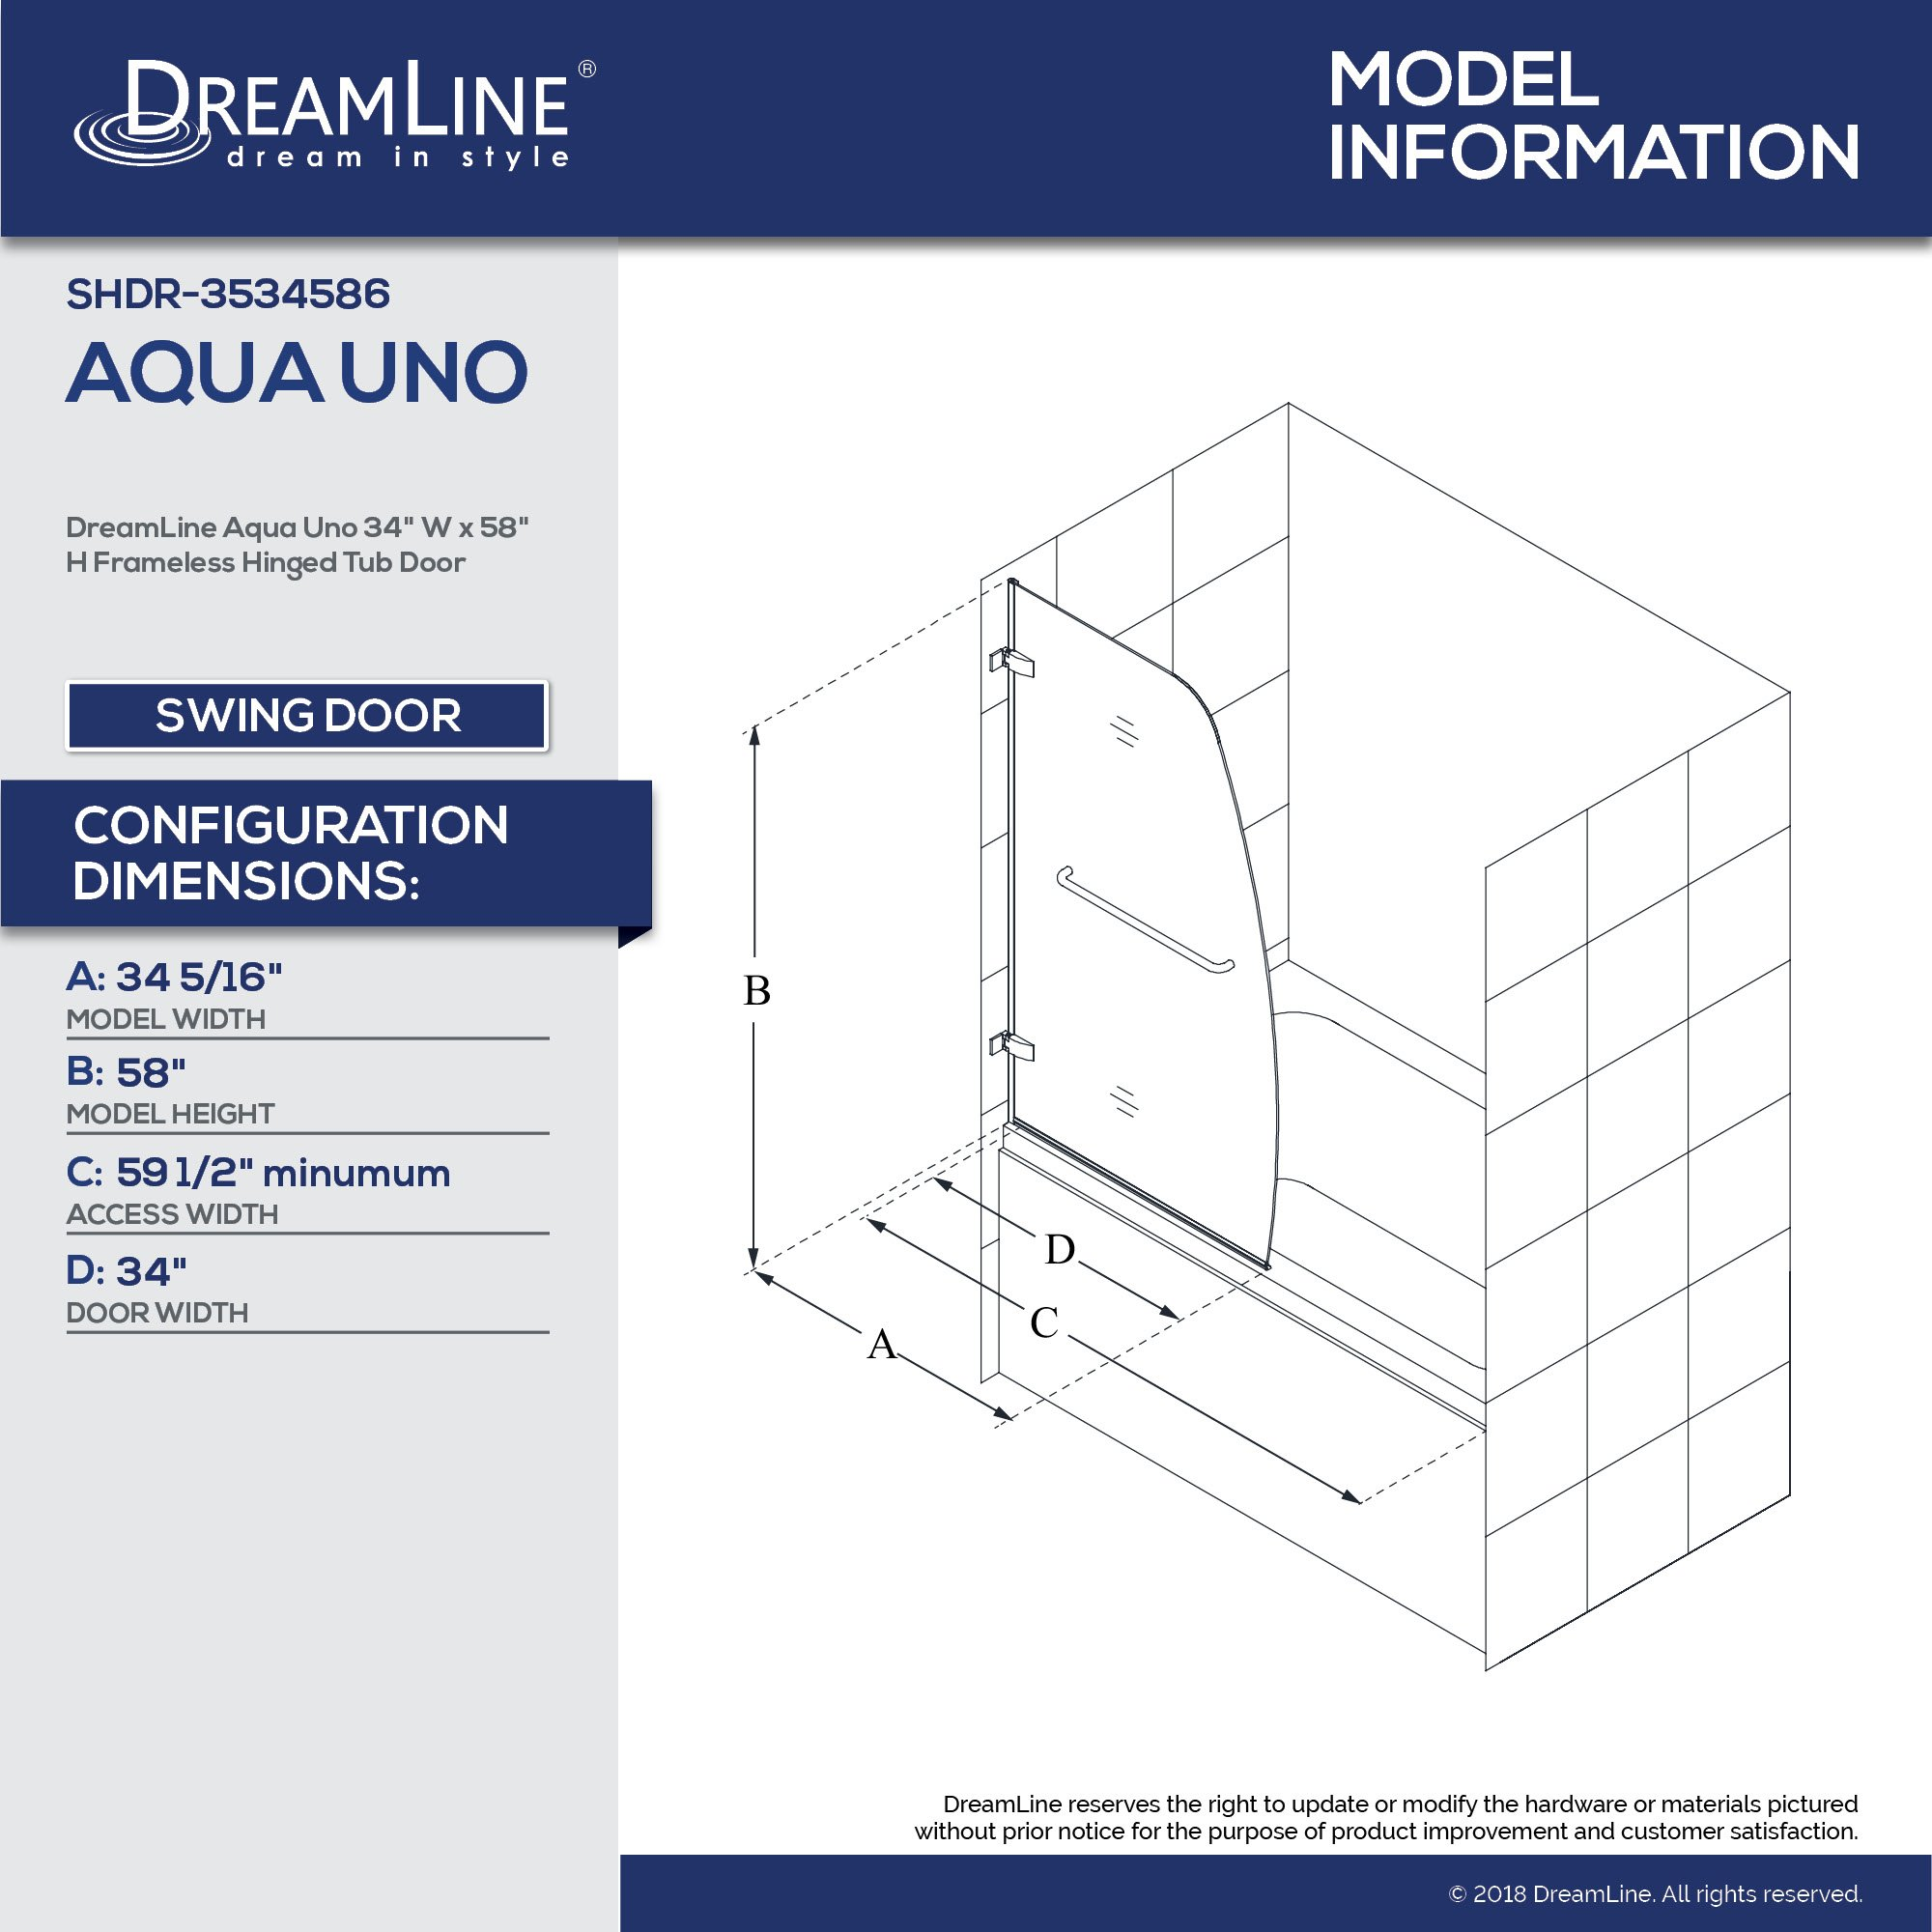 DreamLine Aqua Uno 34 in. Width, Frameless Hinged Tub Door, 1/4'' Glass, Chrome Finish by DreamLine (Image #5)